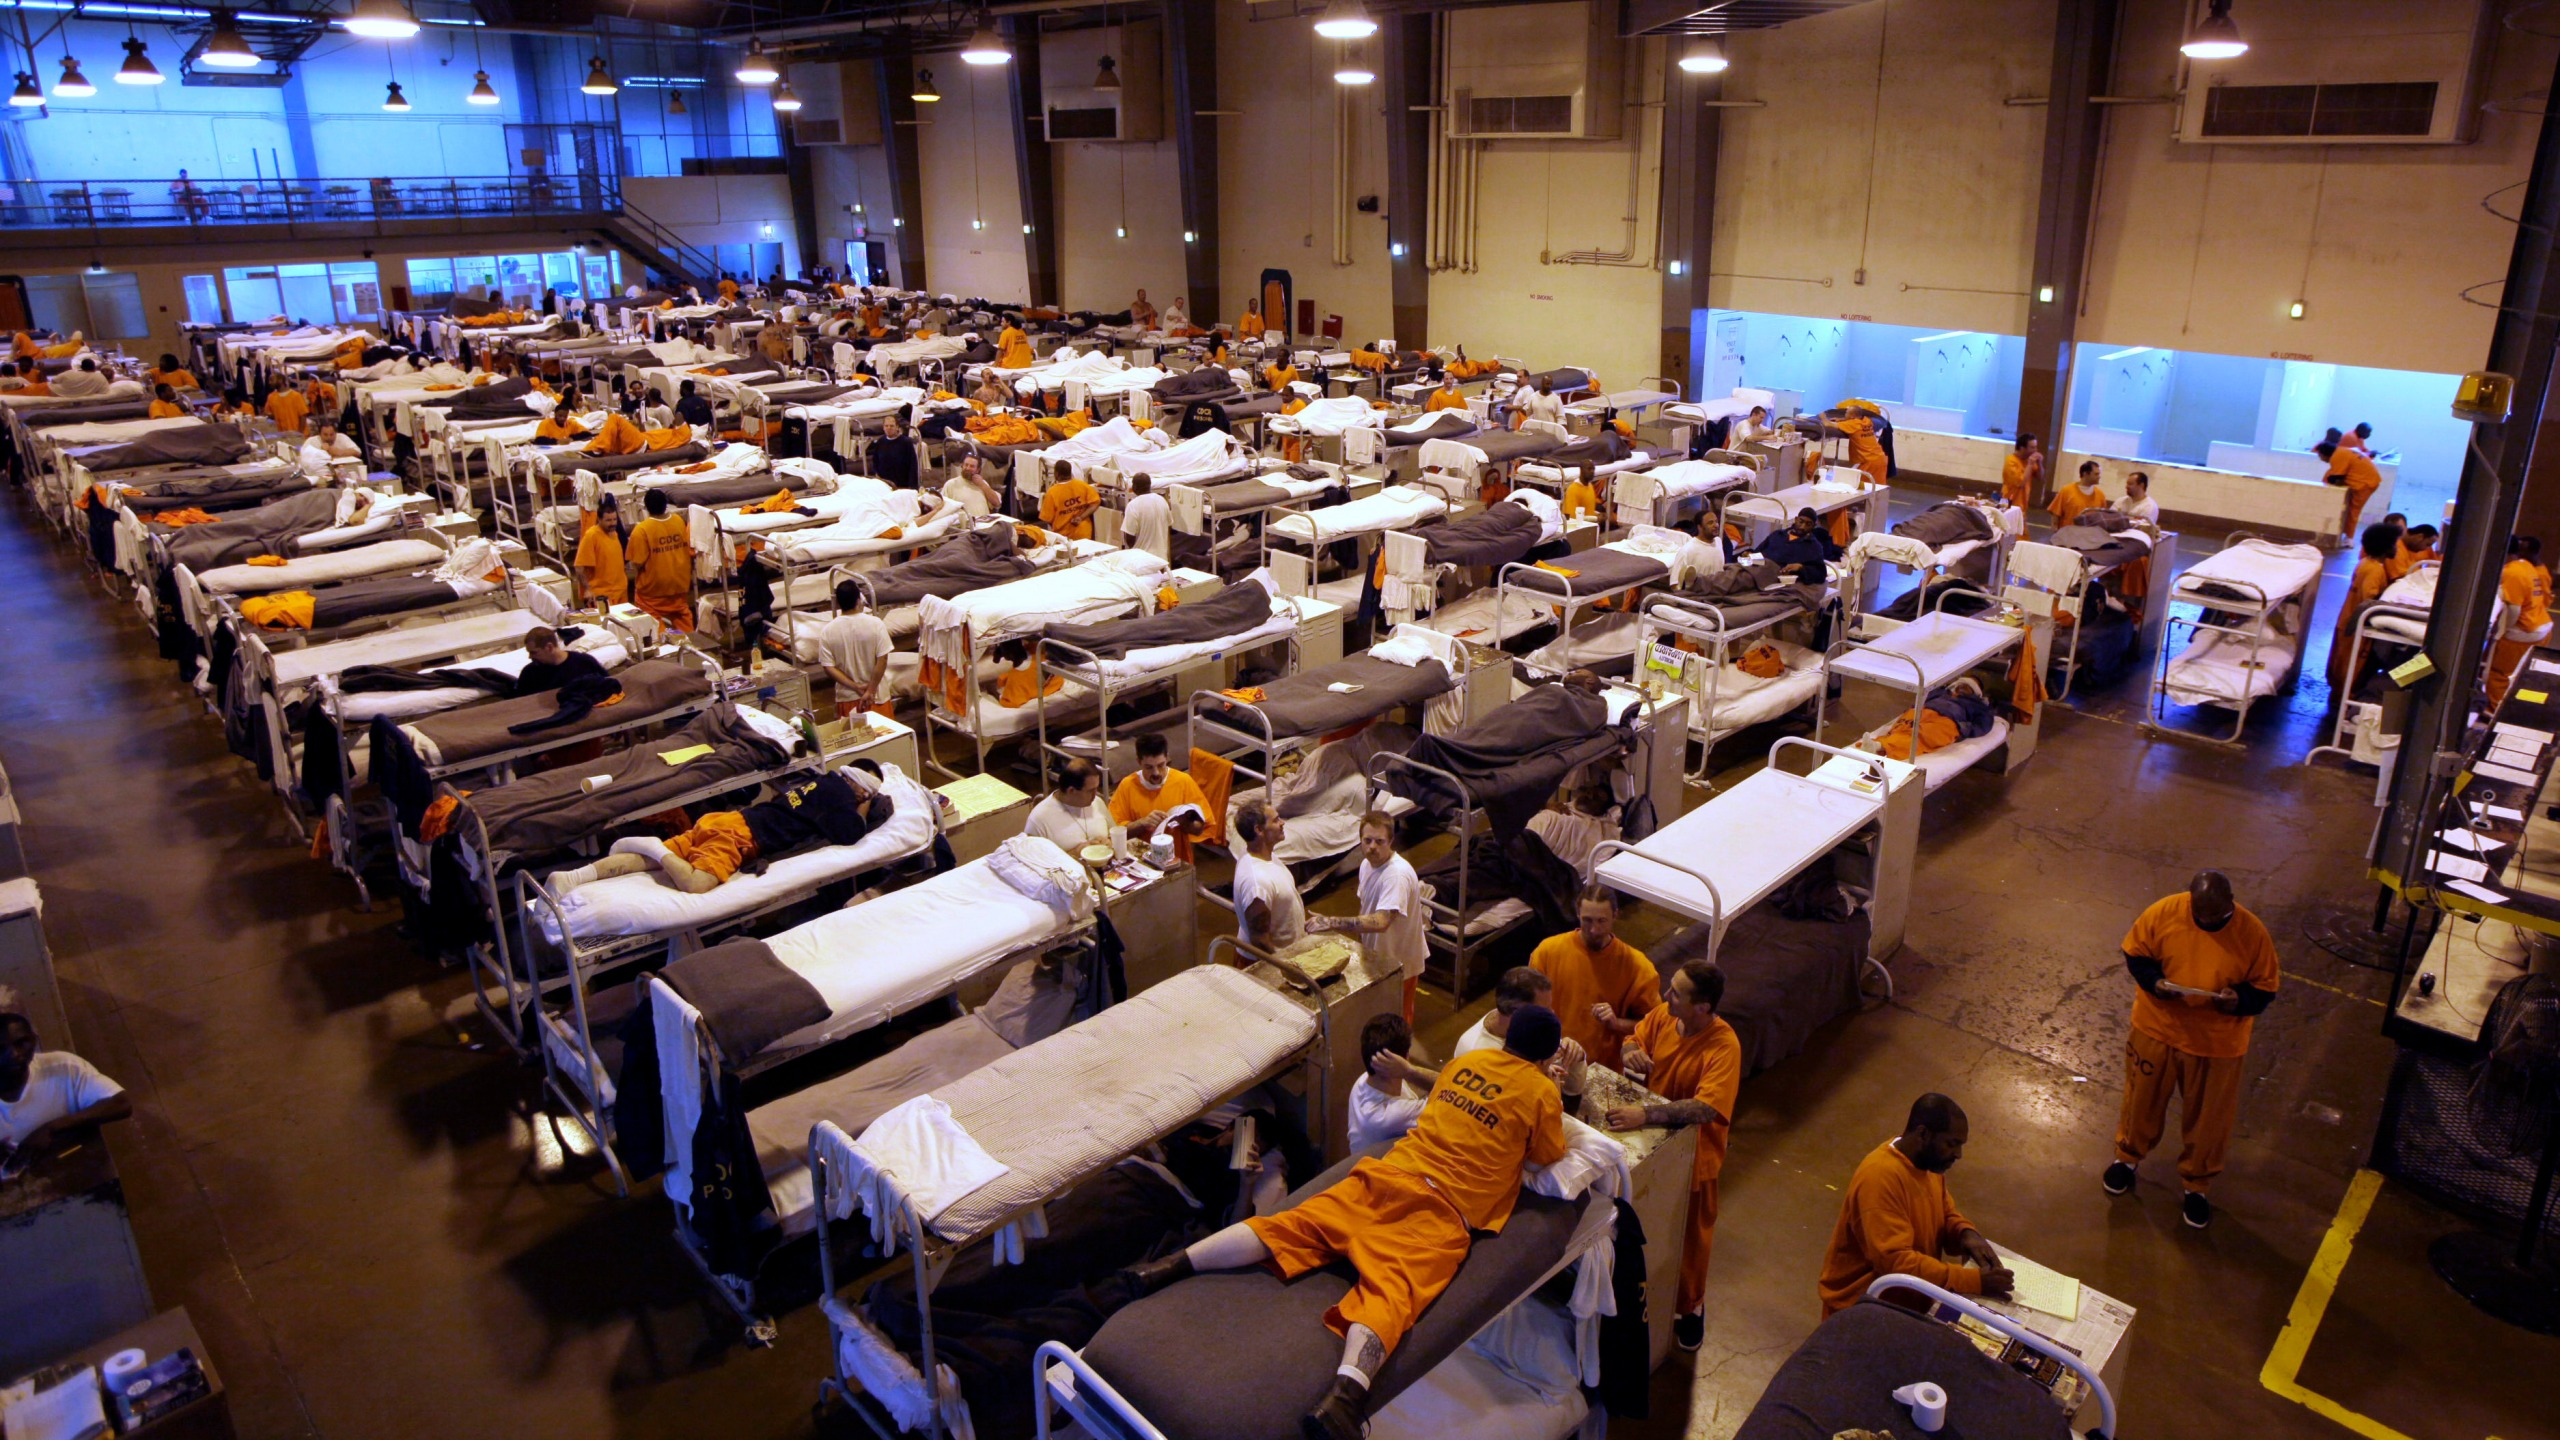 FILE - In this May 20, 2009 file photo, several hundred inmates crowd the gymnasium at San Quentin prison in San Quentin, California. A decade after prison crowding forced California to realign its criminal justice system, the population has shrunk to the point that officials on Tuesday, April 13, 2021, announced they will close one of the state's two inmate firefighter training centers along with portions of two other prisons, the second such announcement in months. (AP Photo/Eric Risberg, File)